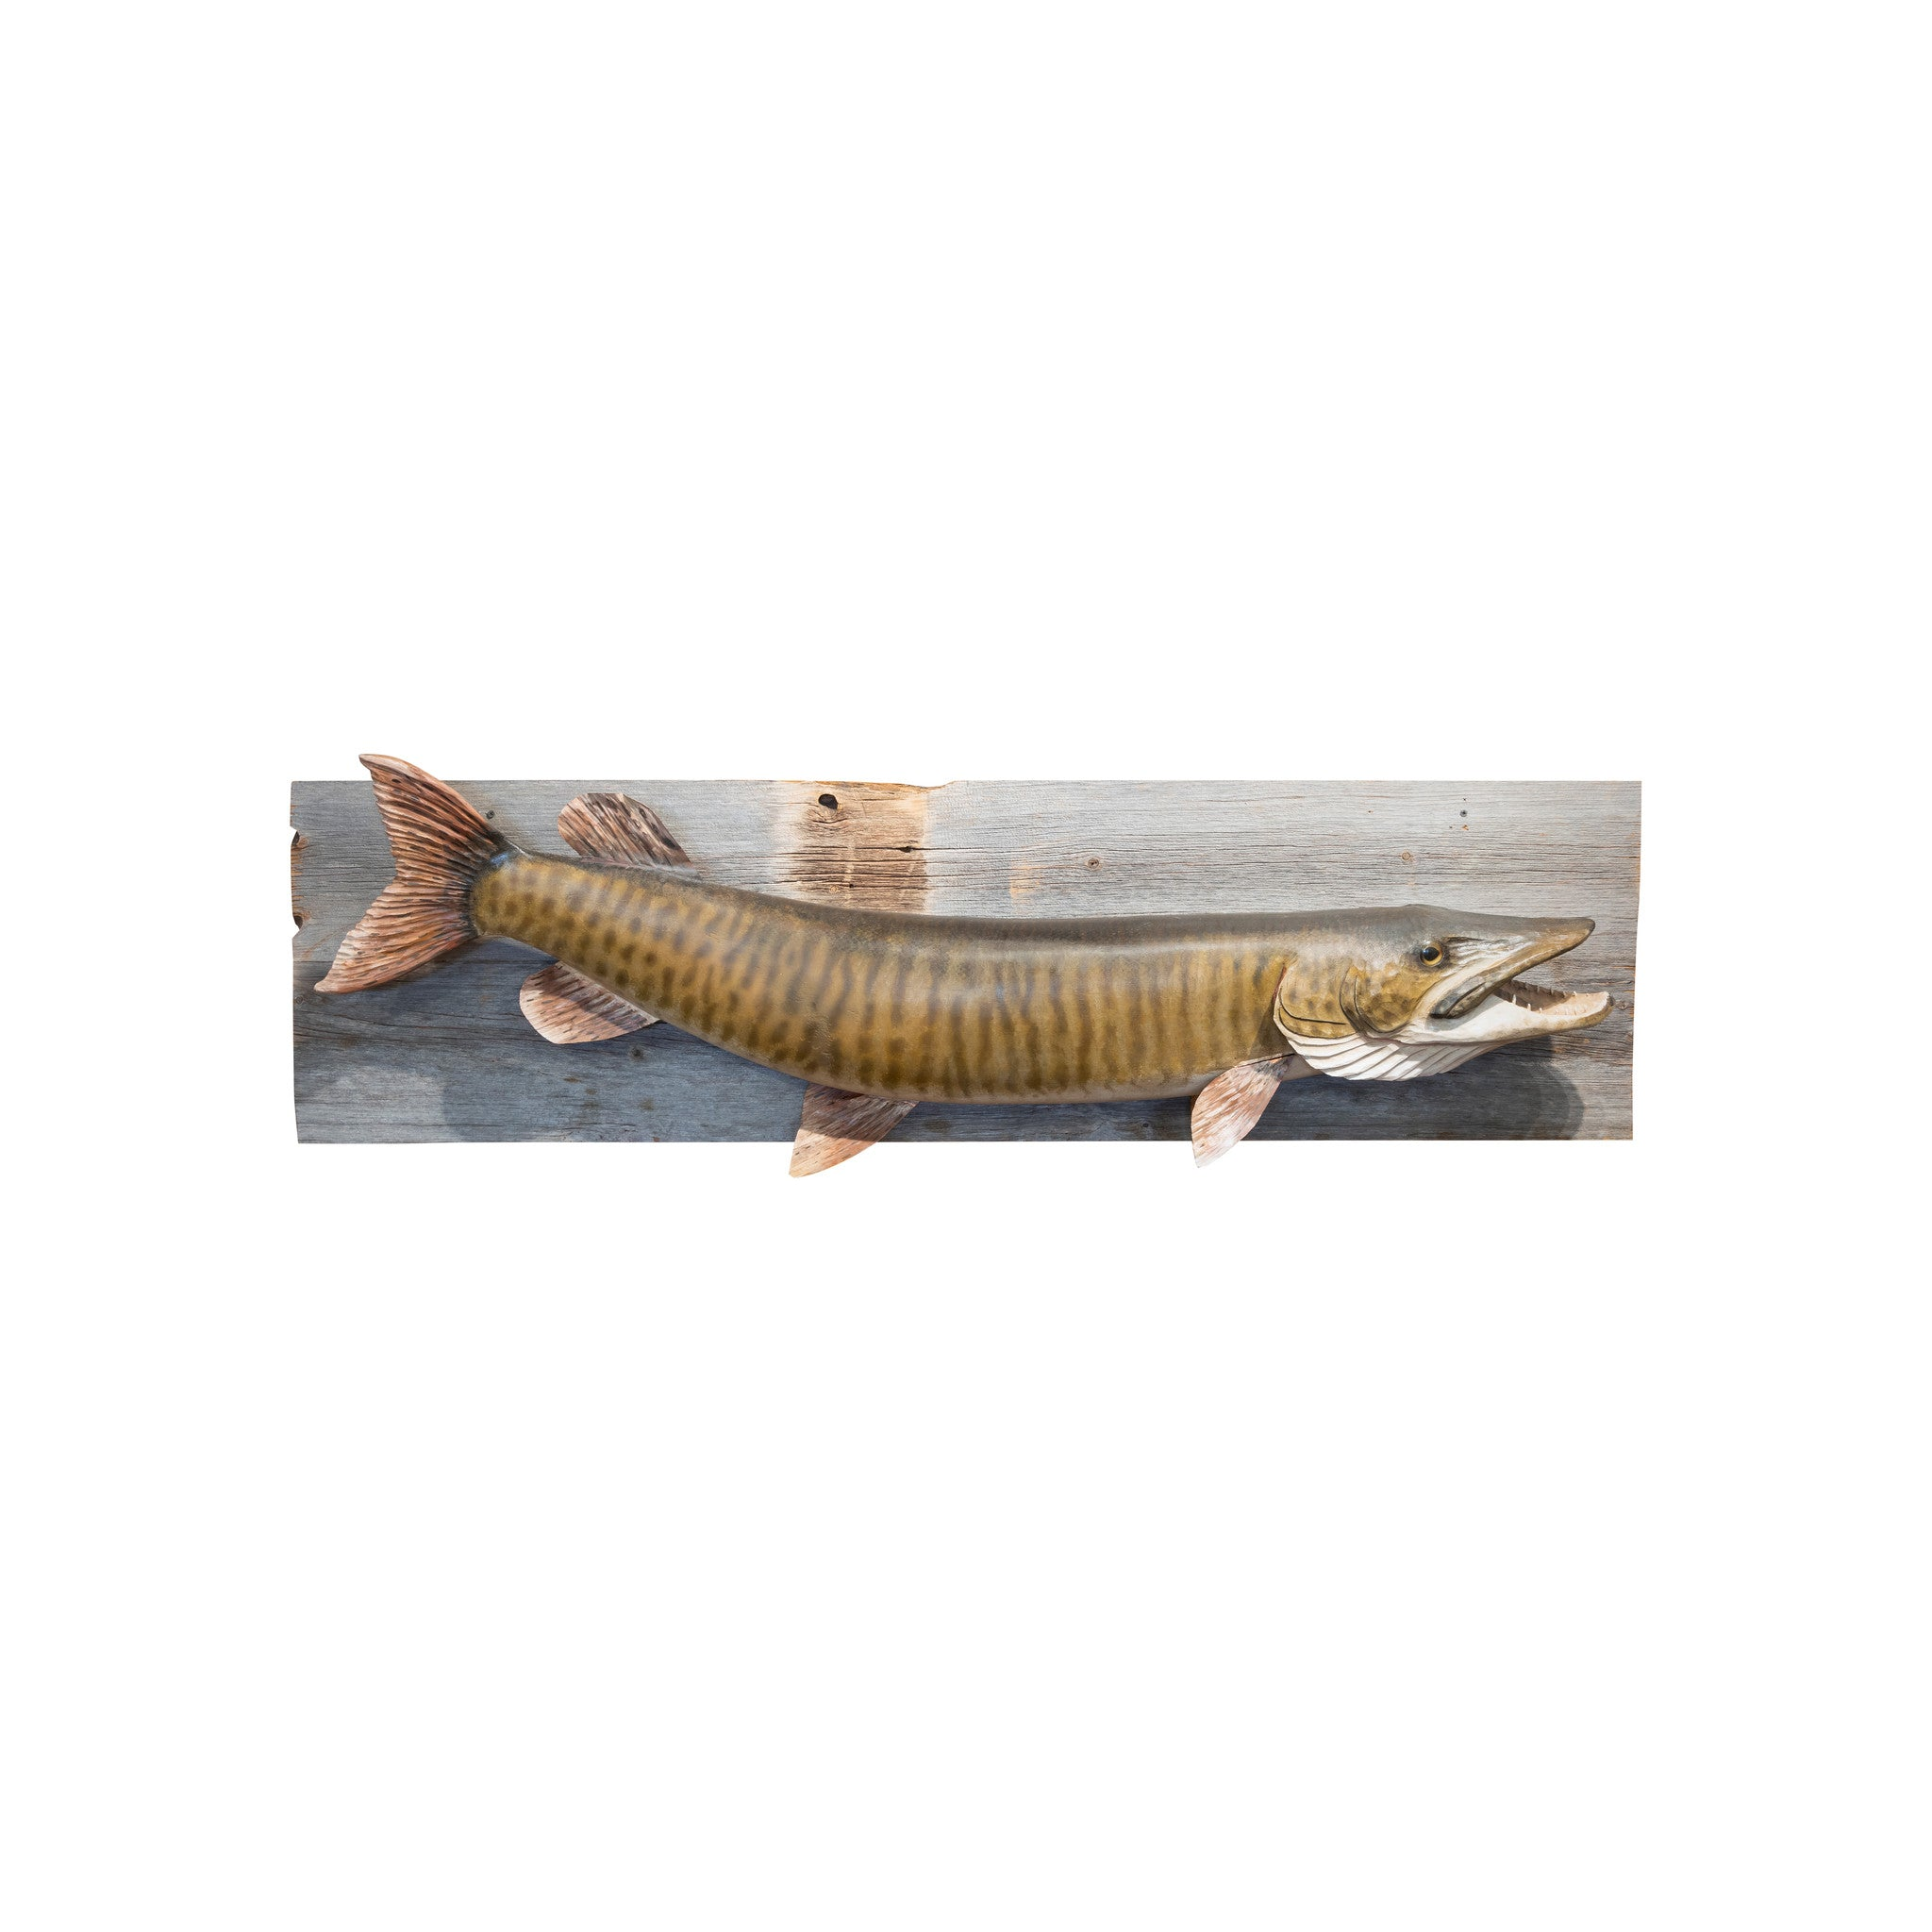 Carved and Painted Muskie Mount borett, carvings, fish mounts, lodge furnishings: taxidermy: fish, taxidermy